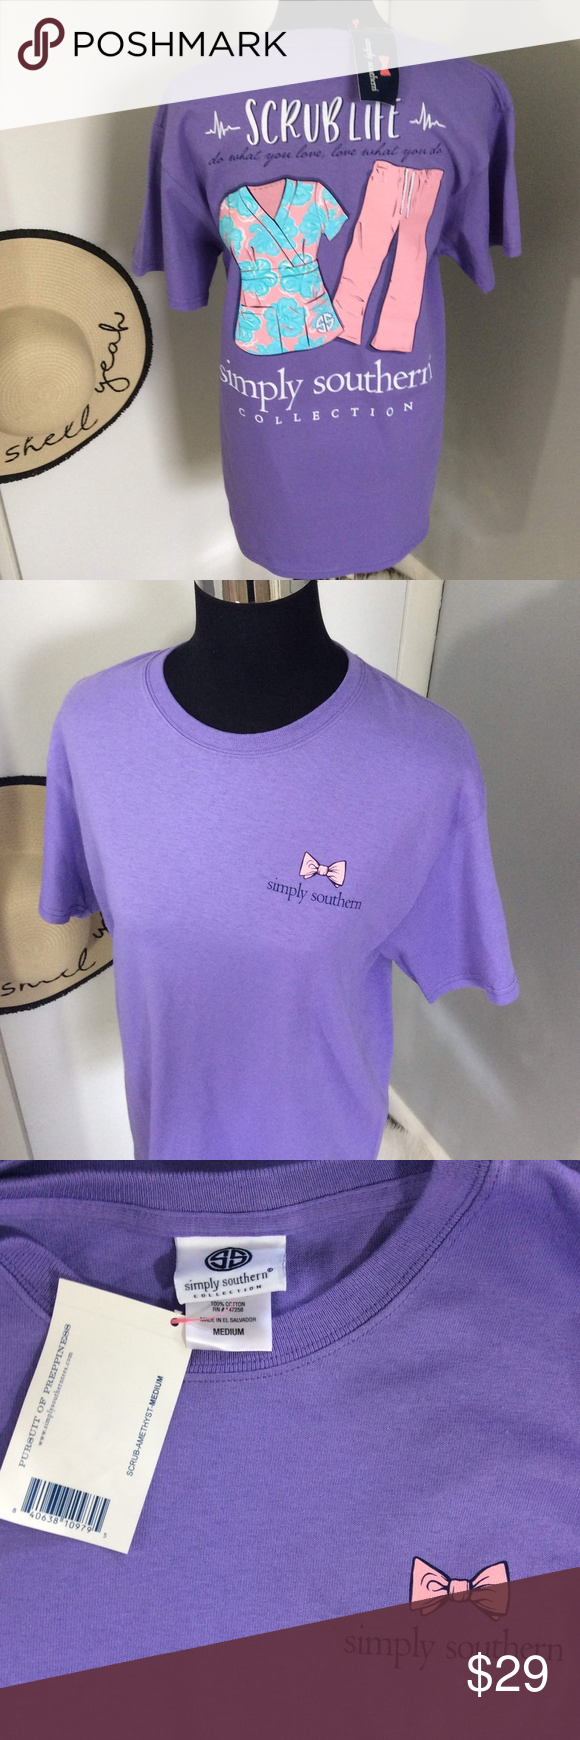 a4fd432bf36 NWT Simply Southern Scrub Life Lavender Shirt M New with Tags Simply  Southern Amethyst / Purple